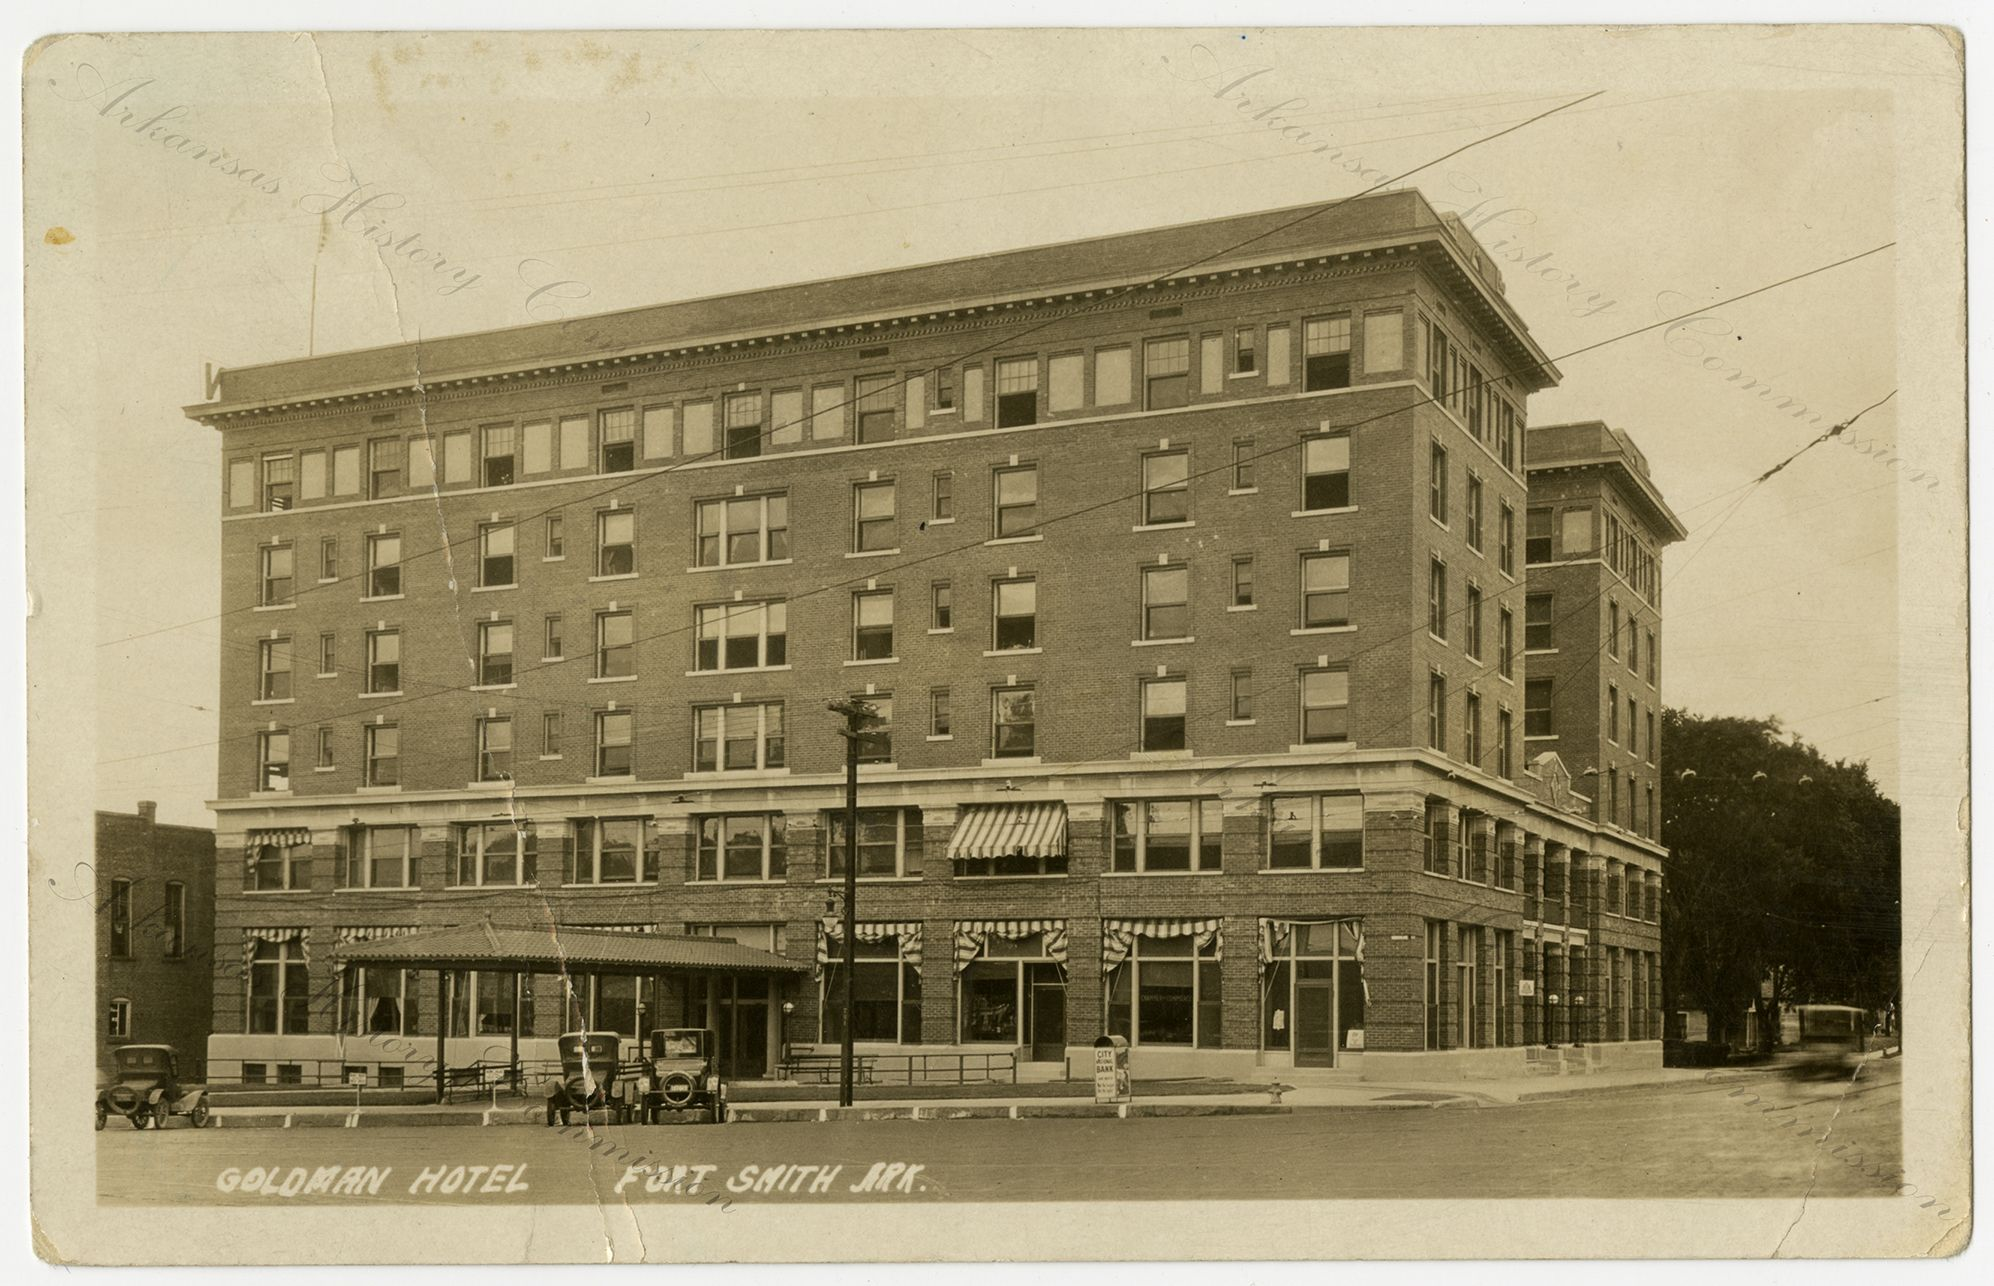 The Goldman Hotel In Fort Smith In 1925 G2972 This Postcard Was